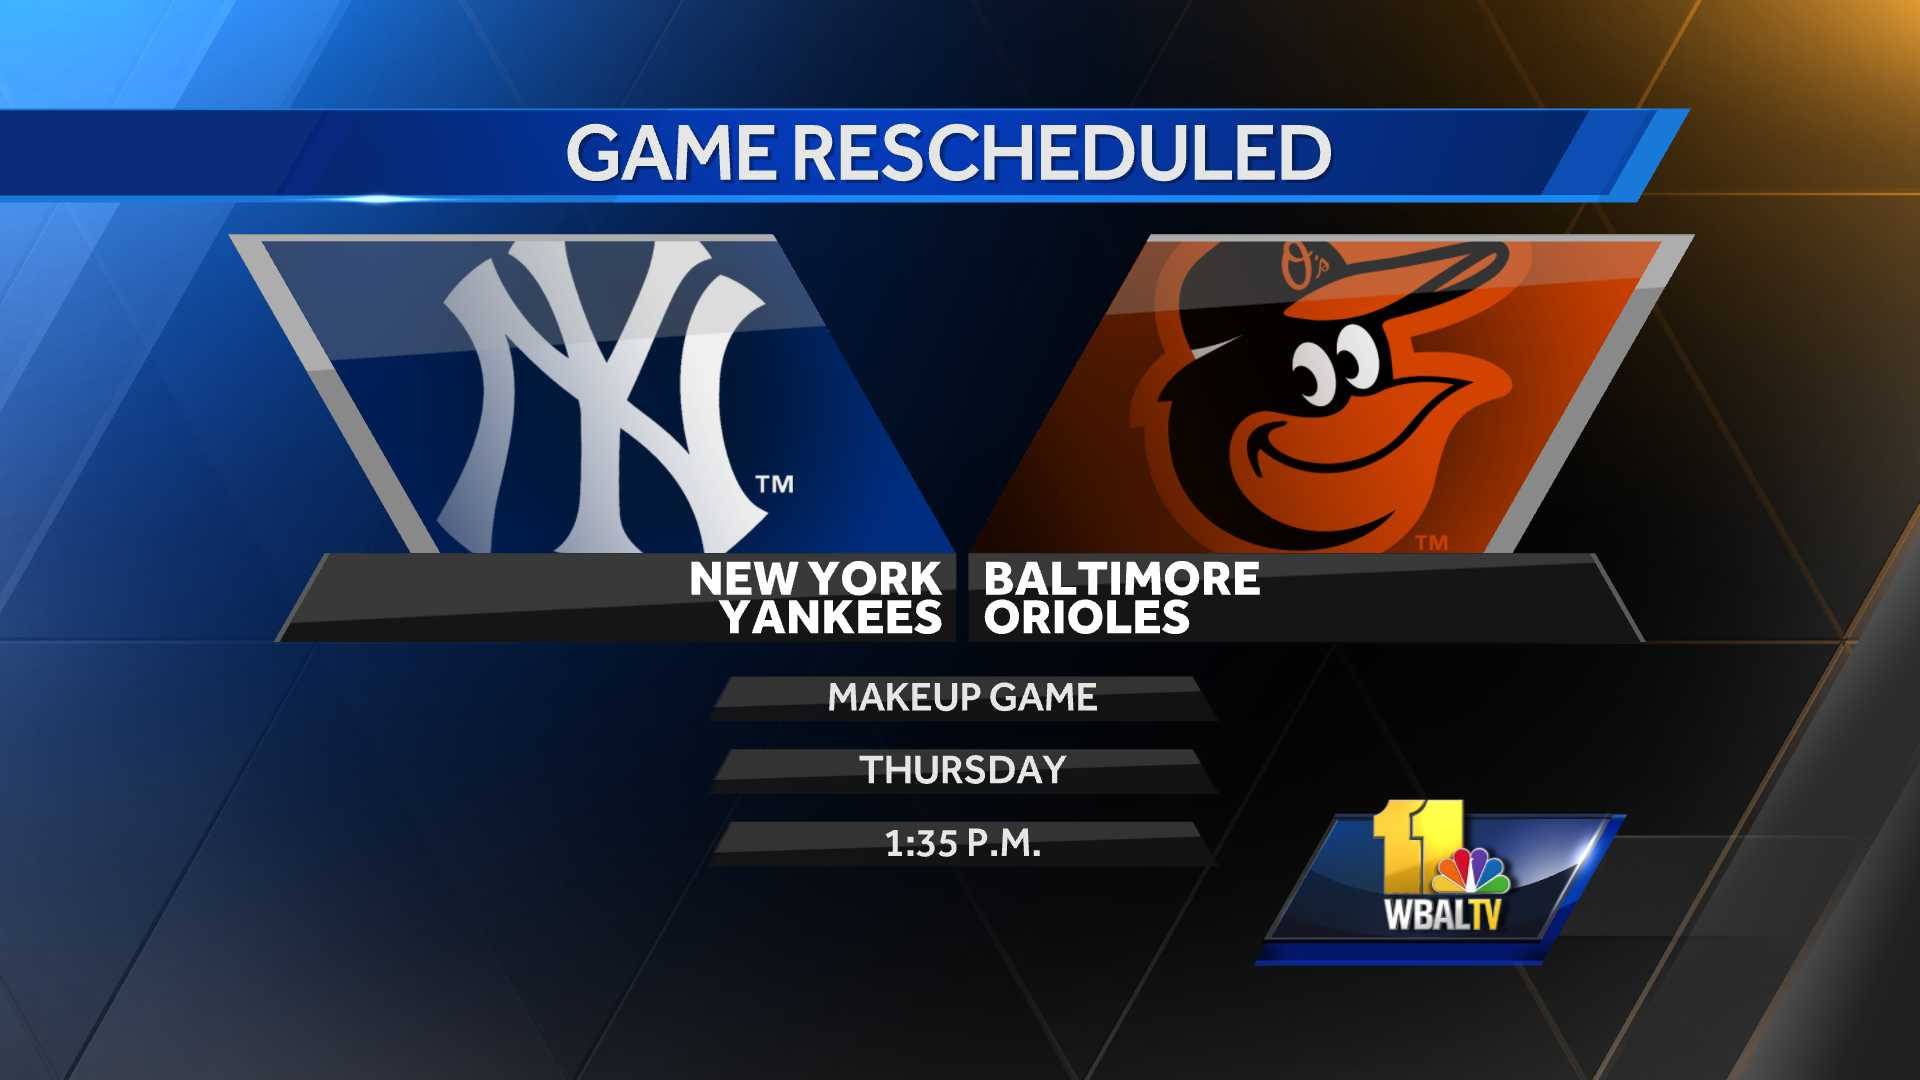 Orioles-Yankees makeup game Thursday